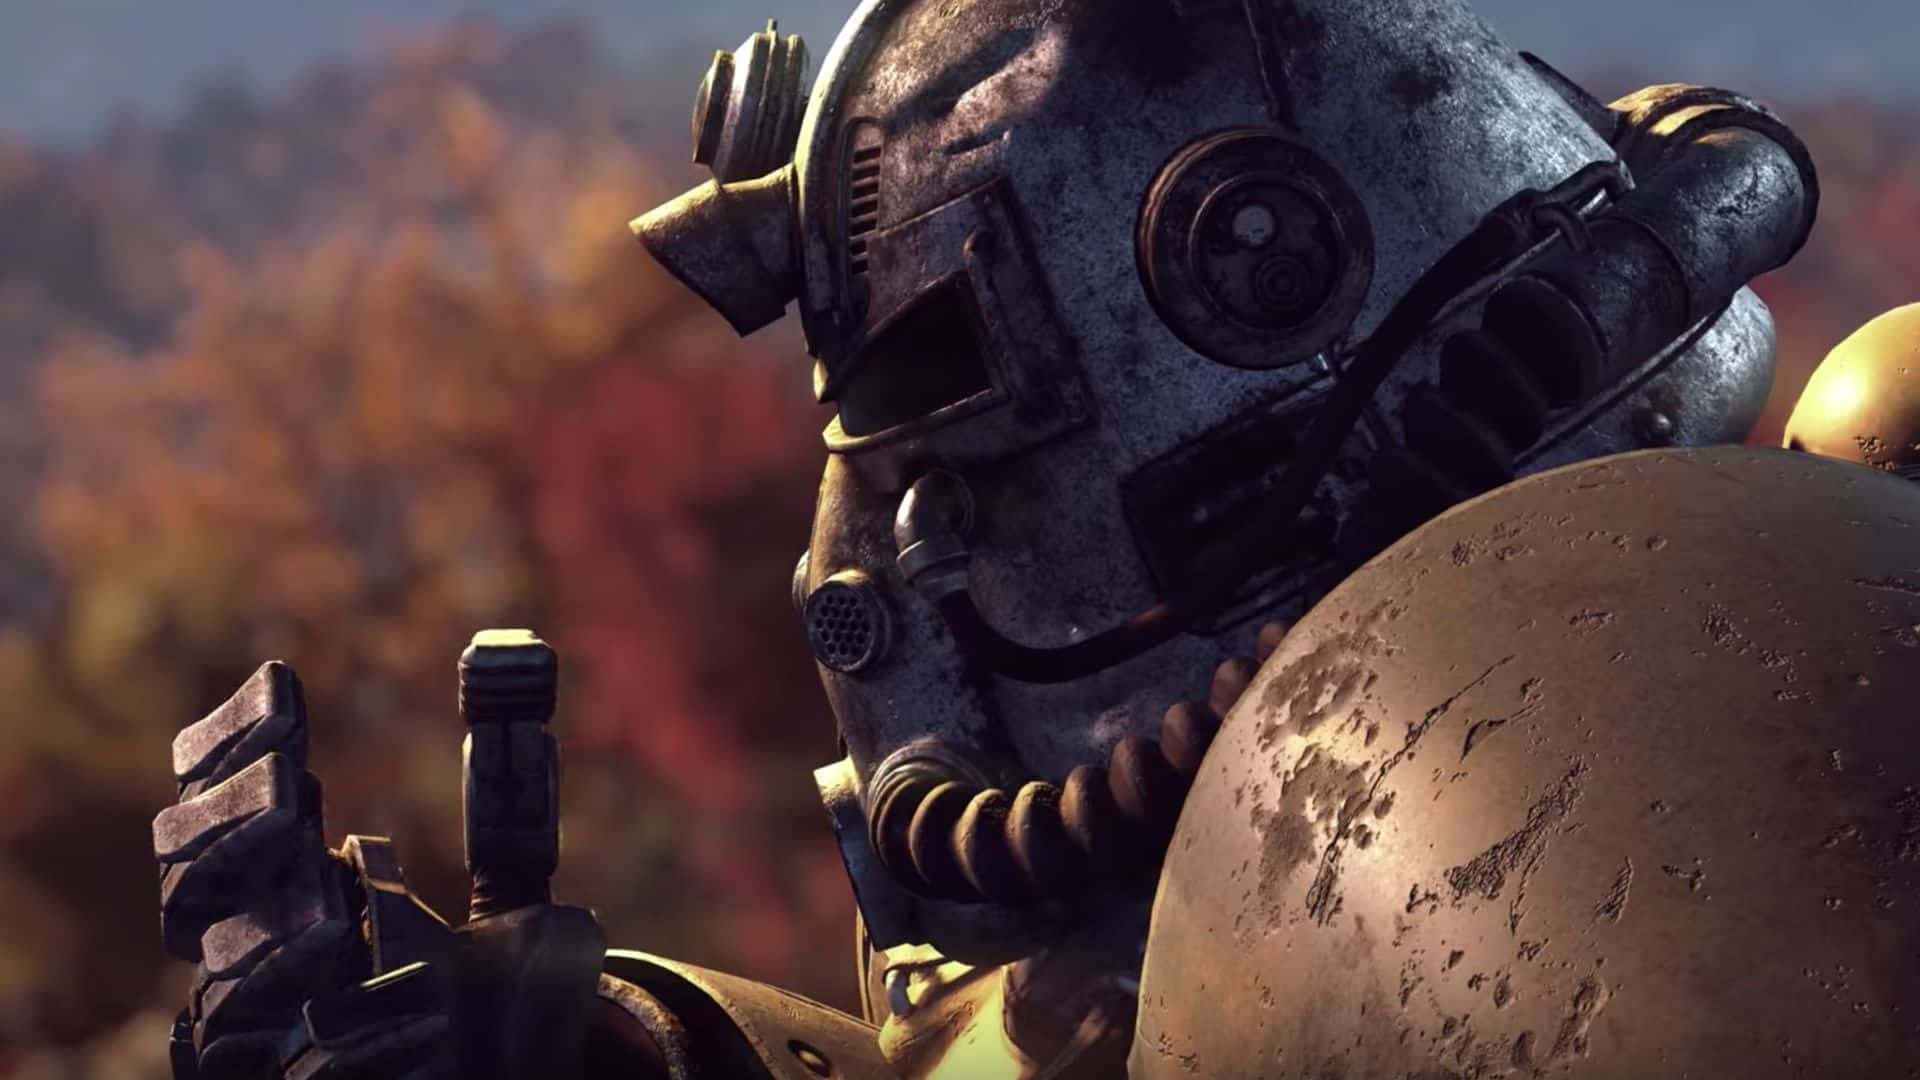 Fallout 76 Online